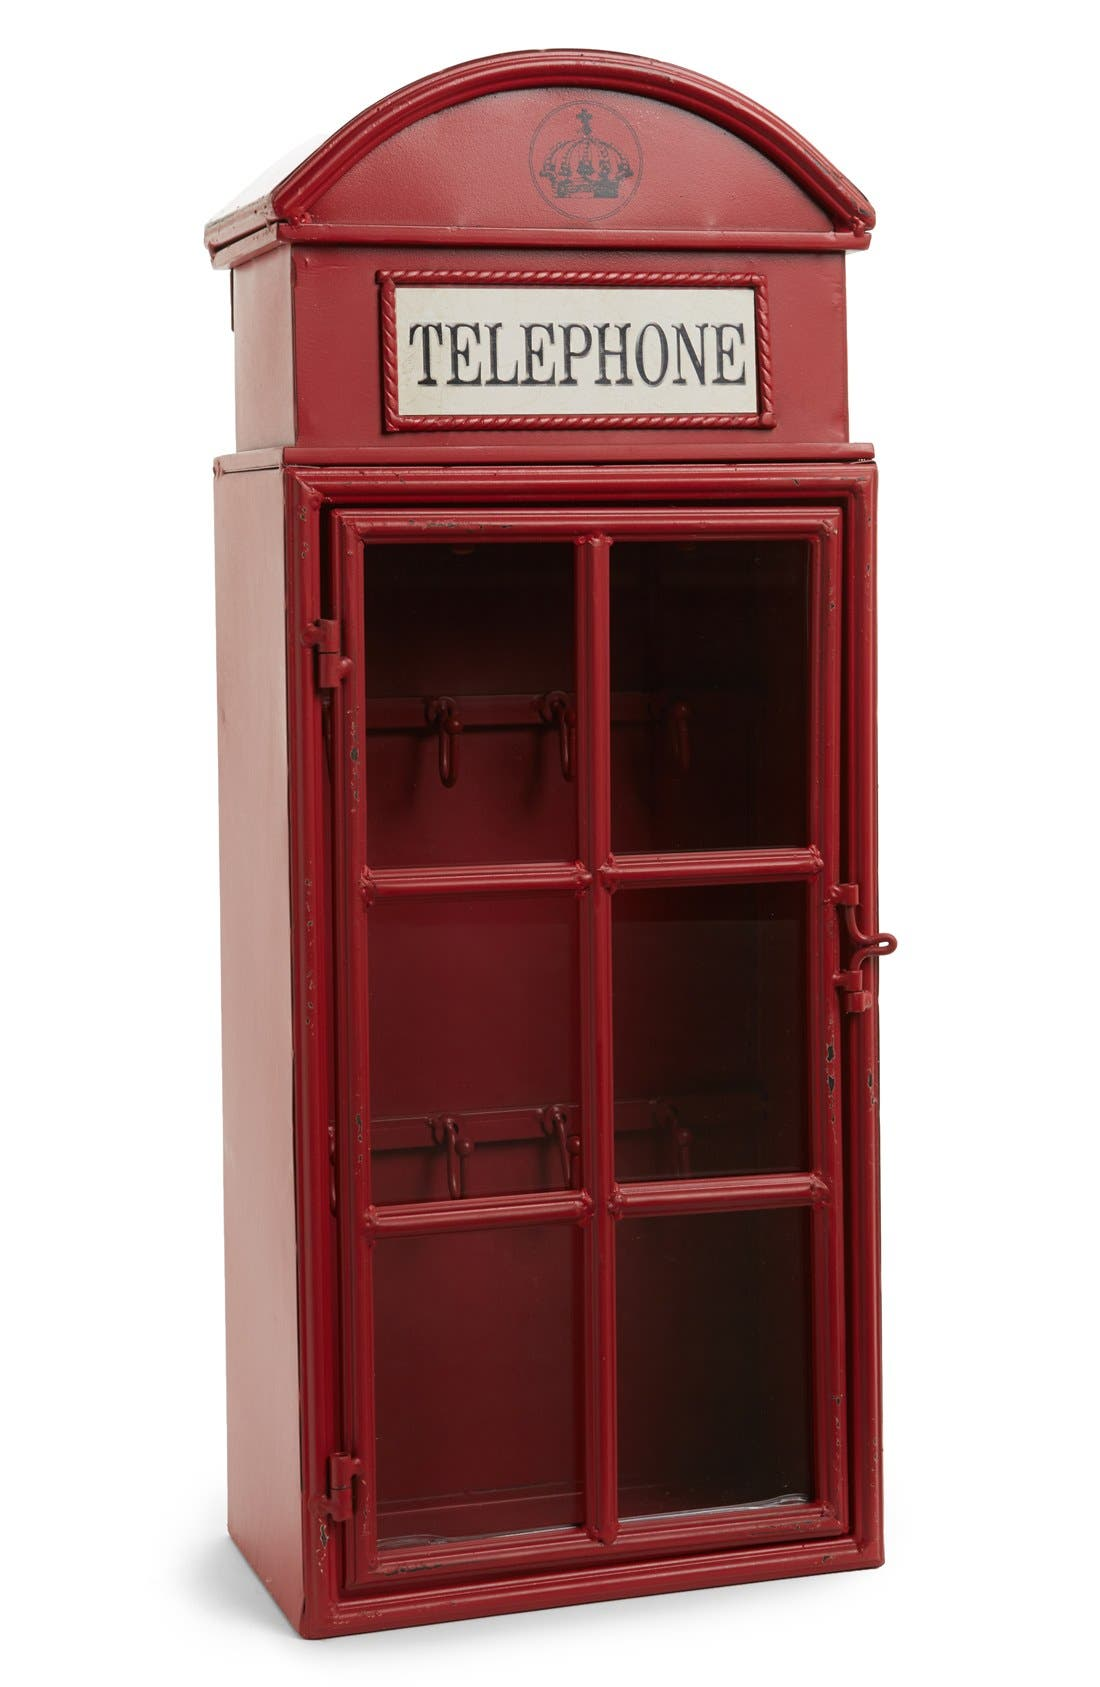 Alternate Image 1 Selected - Creative Co-Op 'Phone Booth' Key Holder